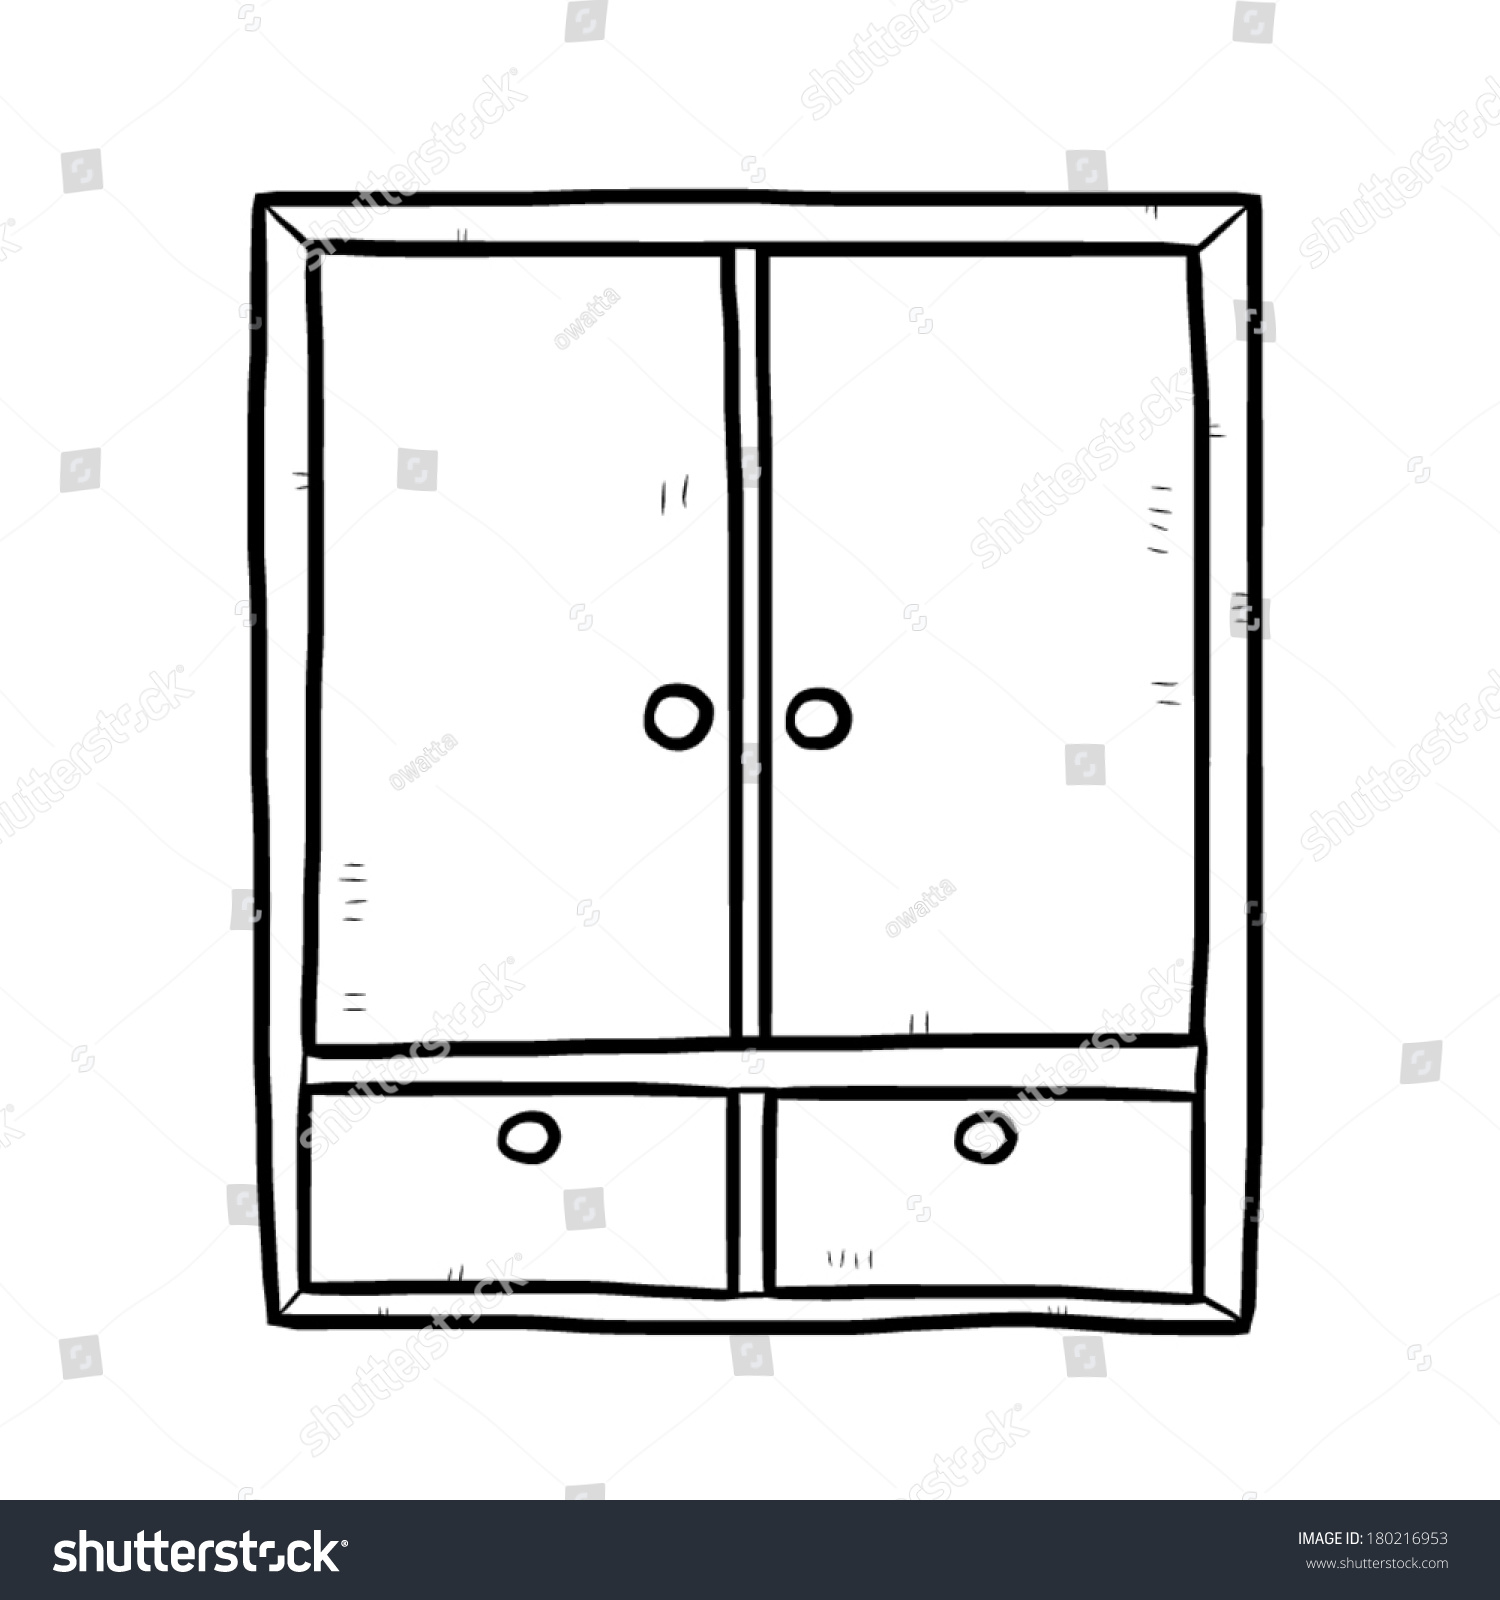 Wooden Wardrobe Cartoon Vector And Illustration Black White Hand Drawn Sketch